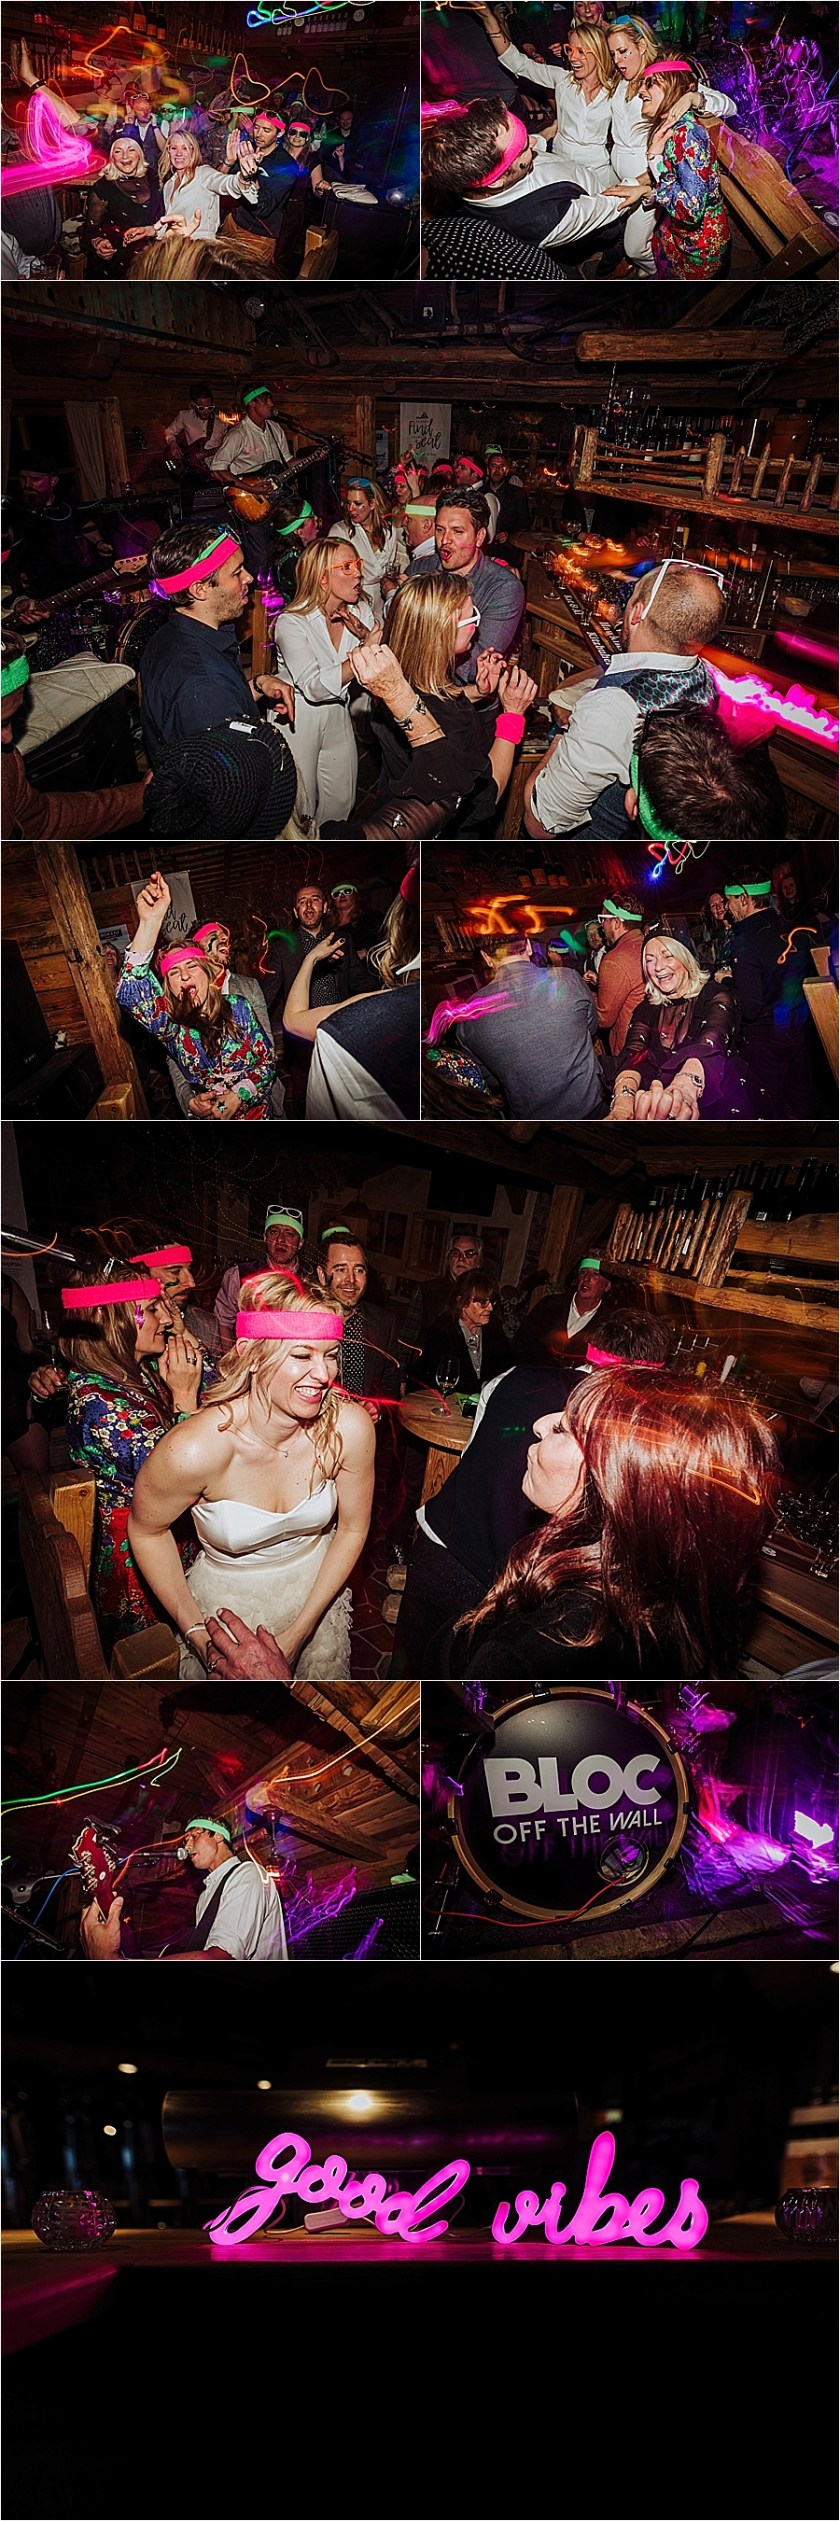 Neon apres ski themed wedding reception for this mountain wedding in the Austrian Alps by Wild Connections Photography